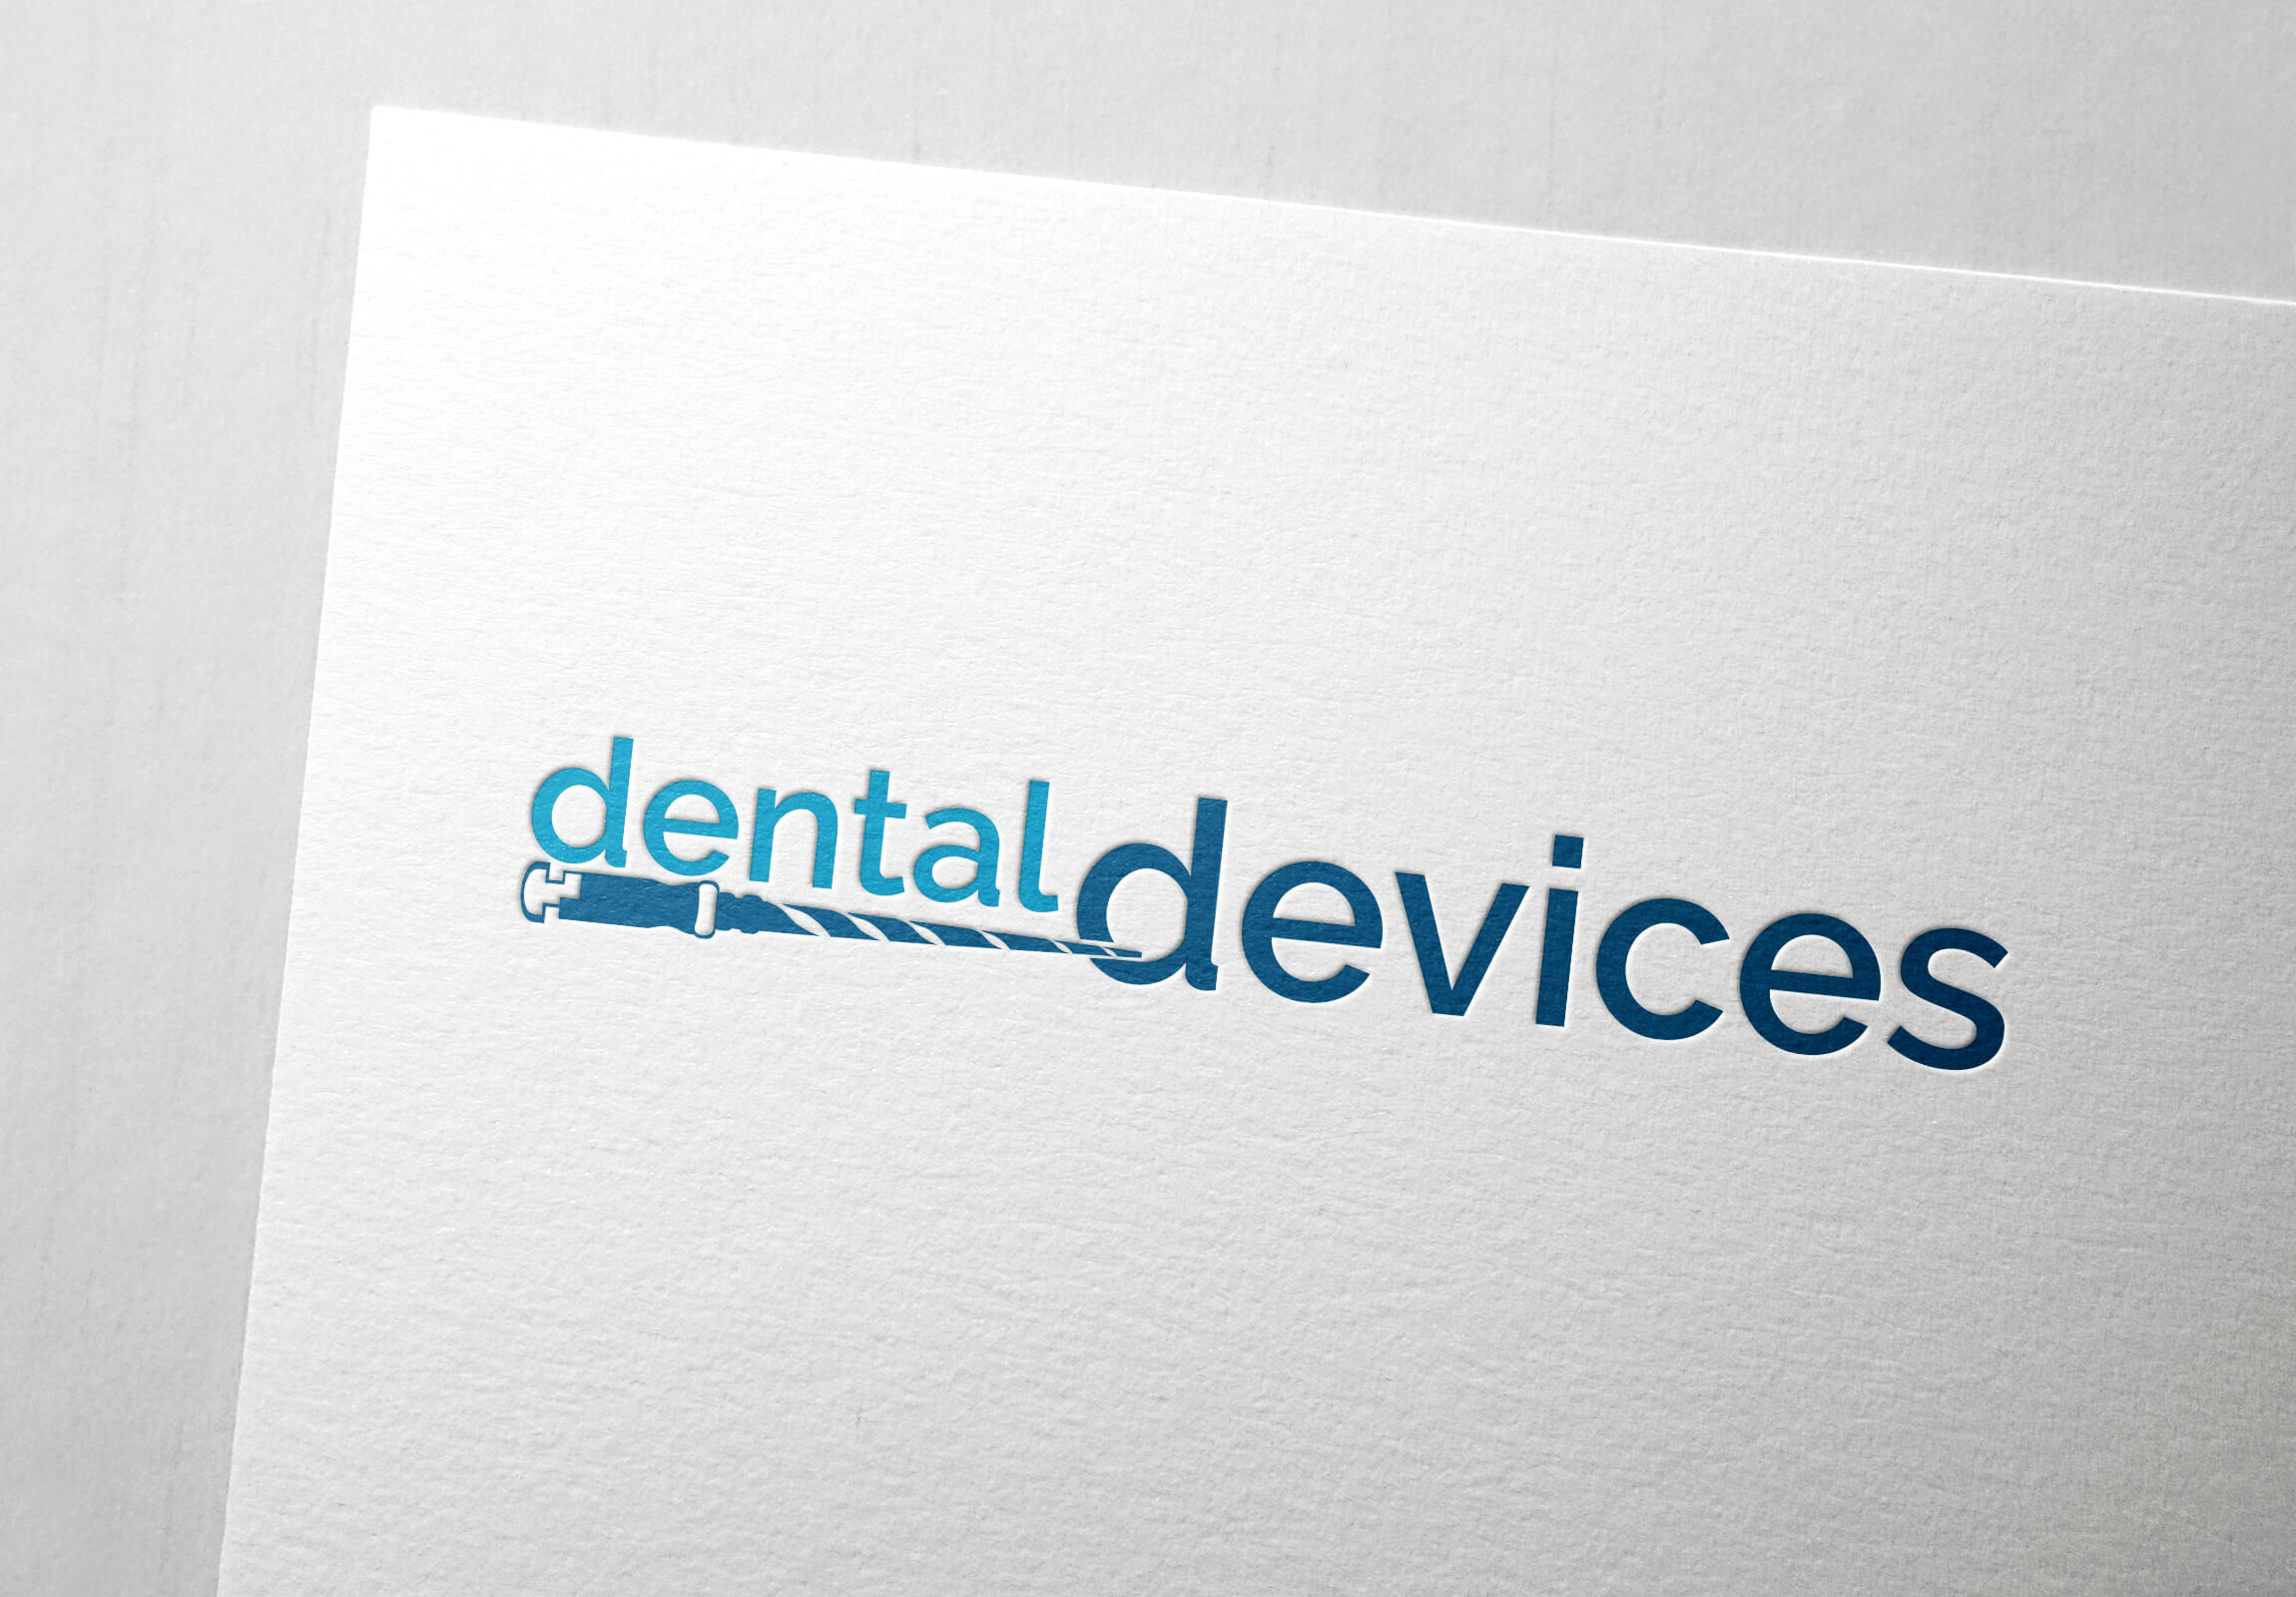 Premium vector logo design for Dental Devices